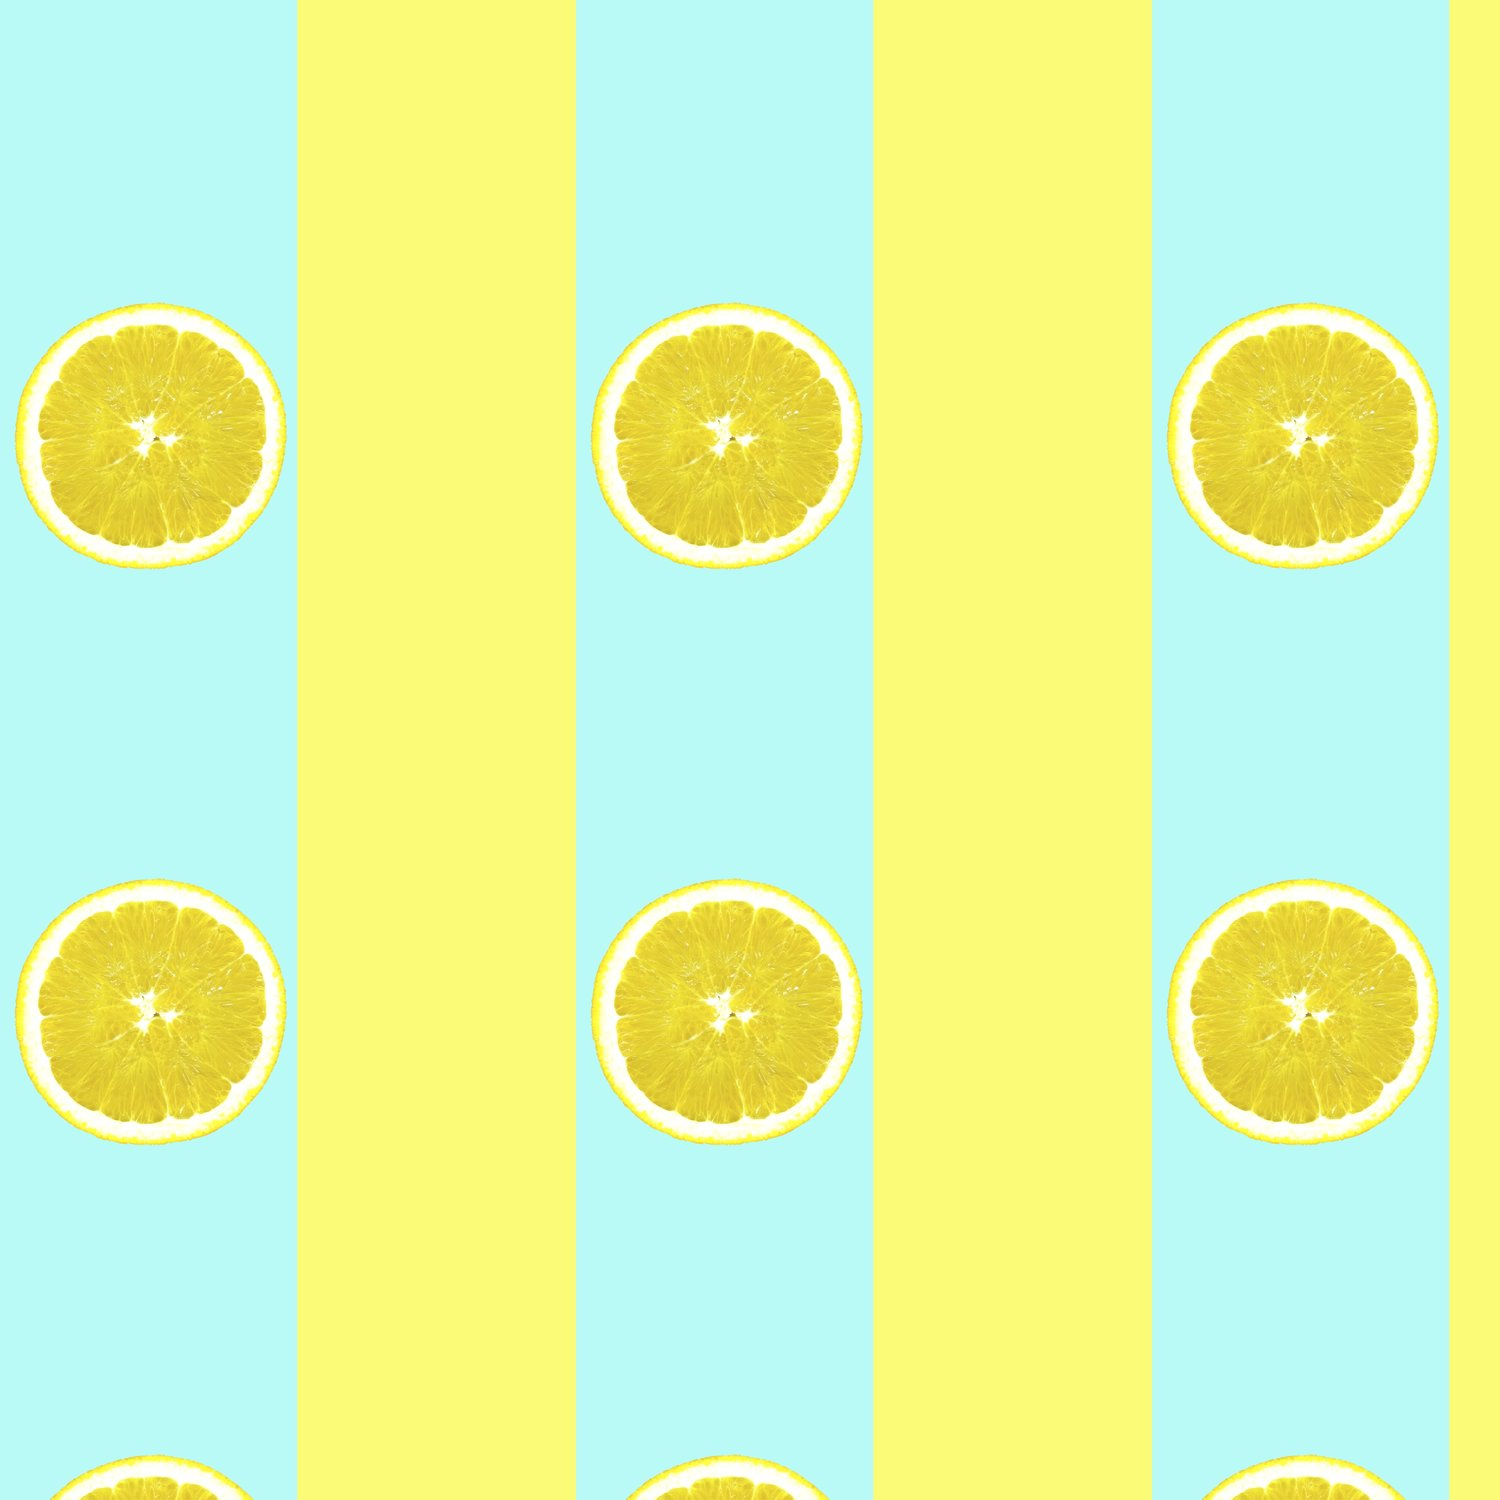 yellowstripelemon.jpg